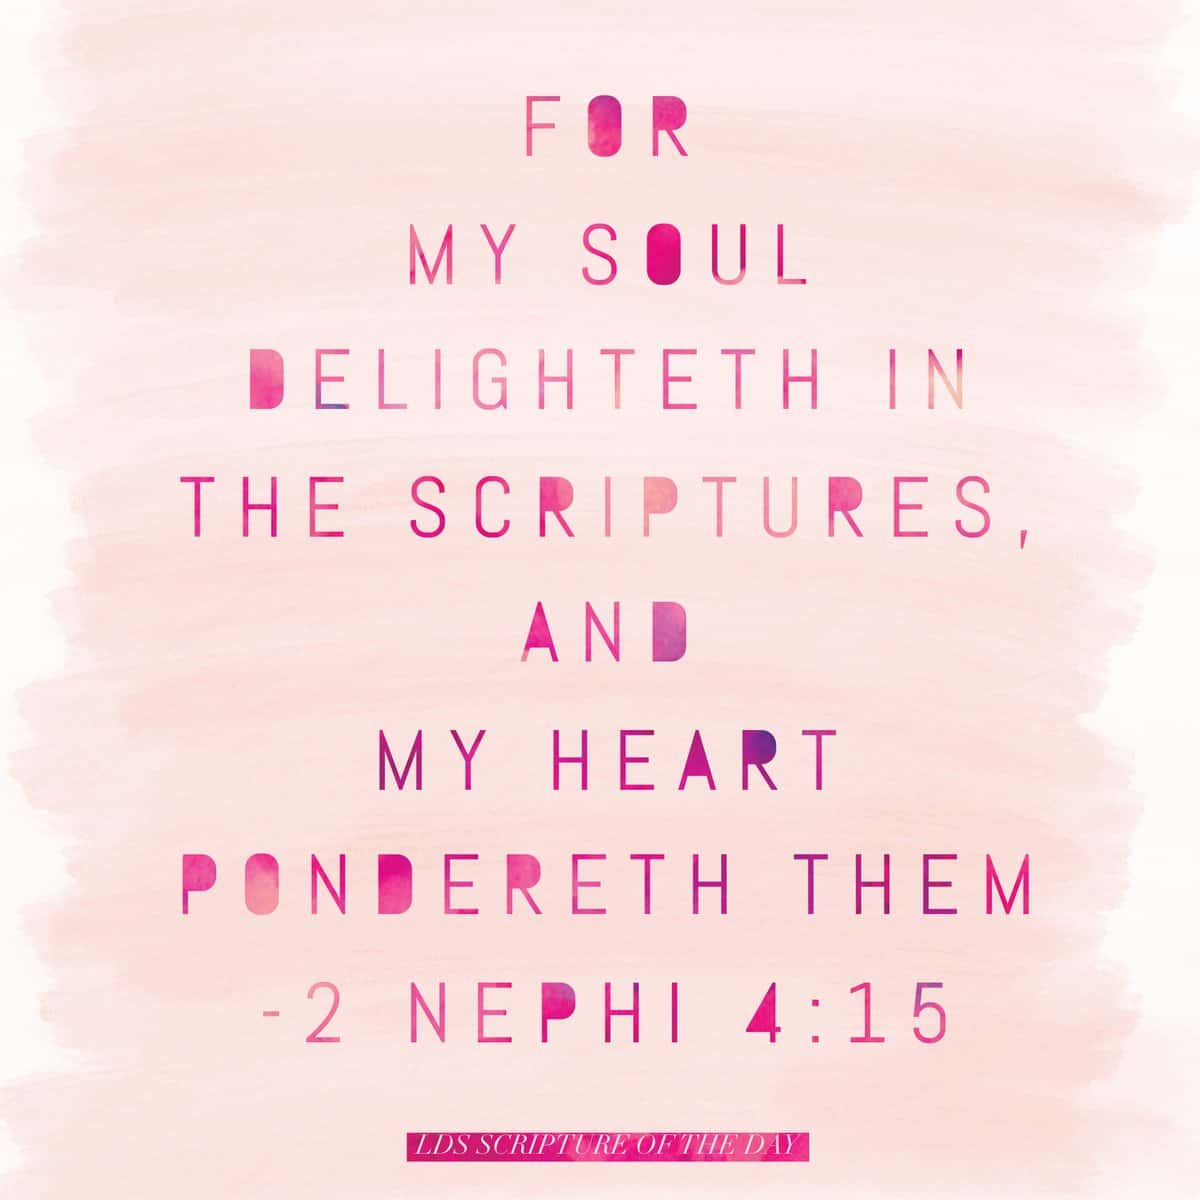 For my soul delighteth in the scriptures, and my heart pondereth them 2 Nephi 4:15